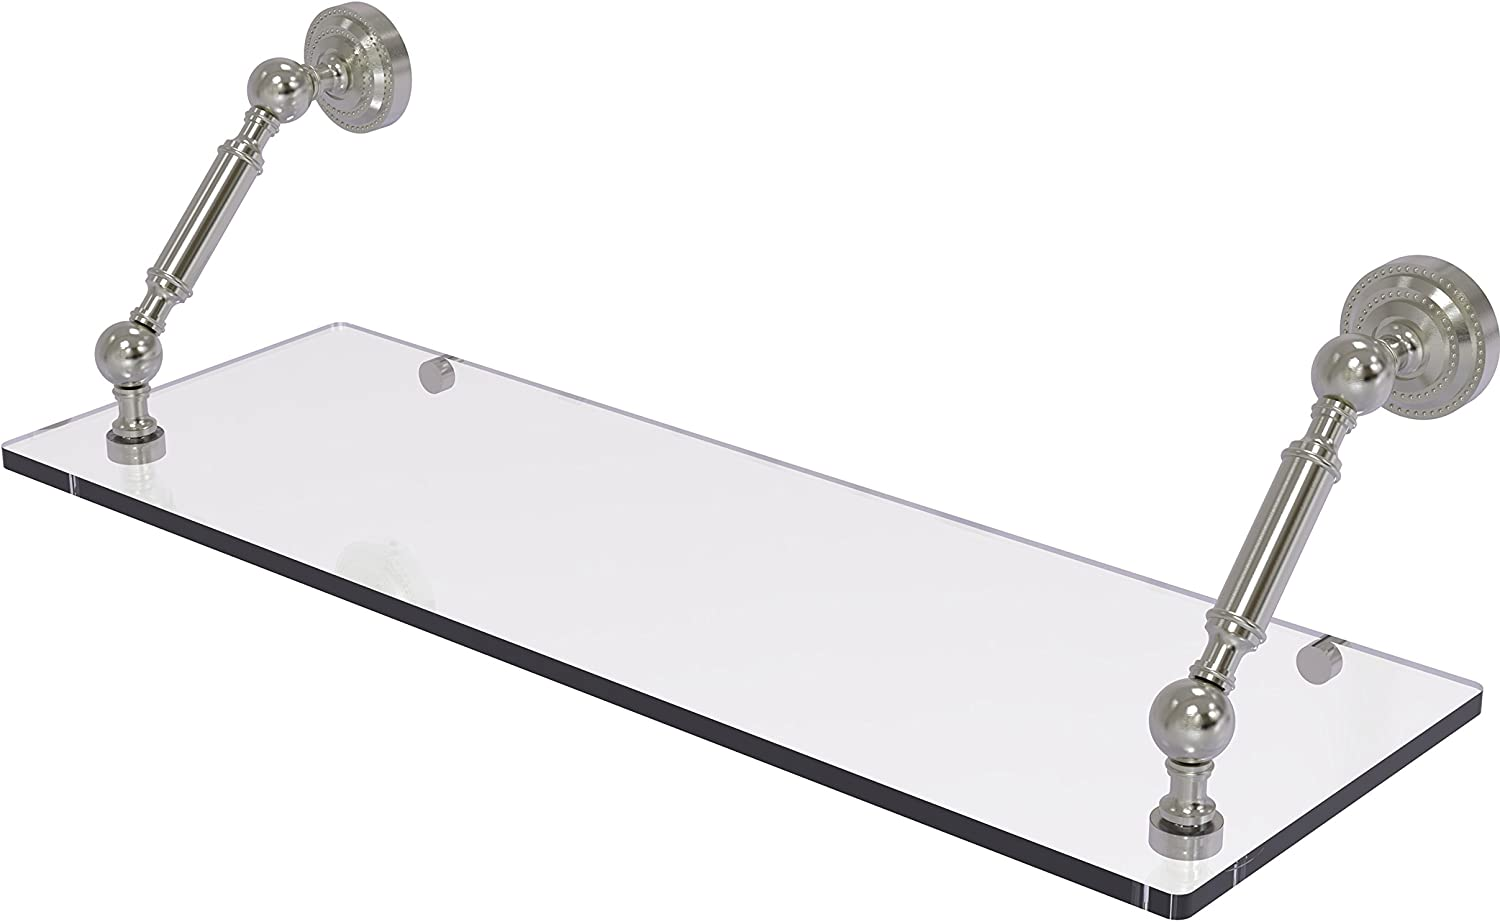 Allied Brass Dottingham Collection 24 Inch Floating Glass Shelf, DT-1-24-SN